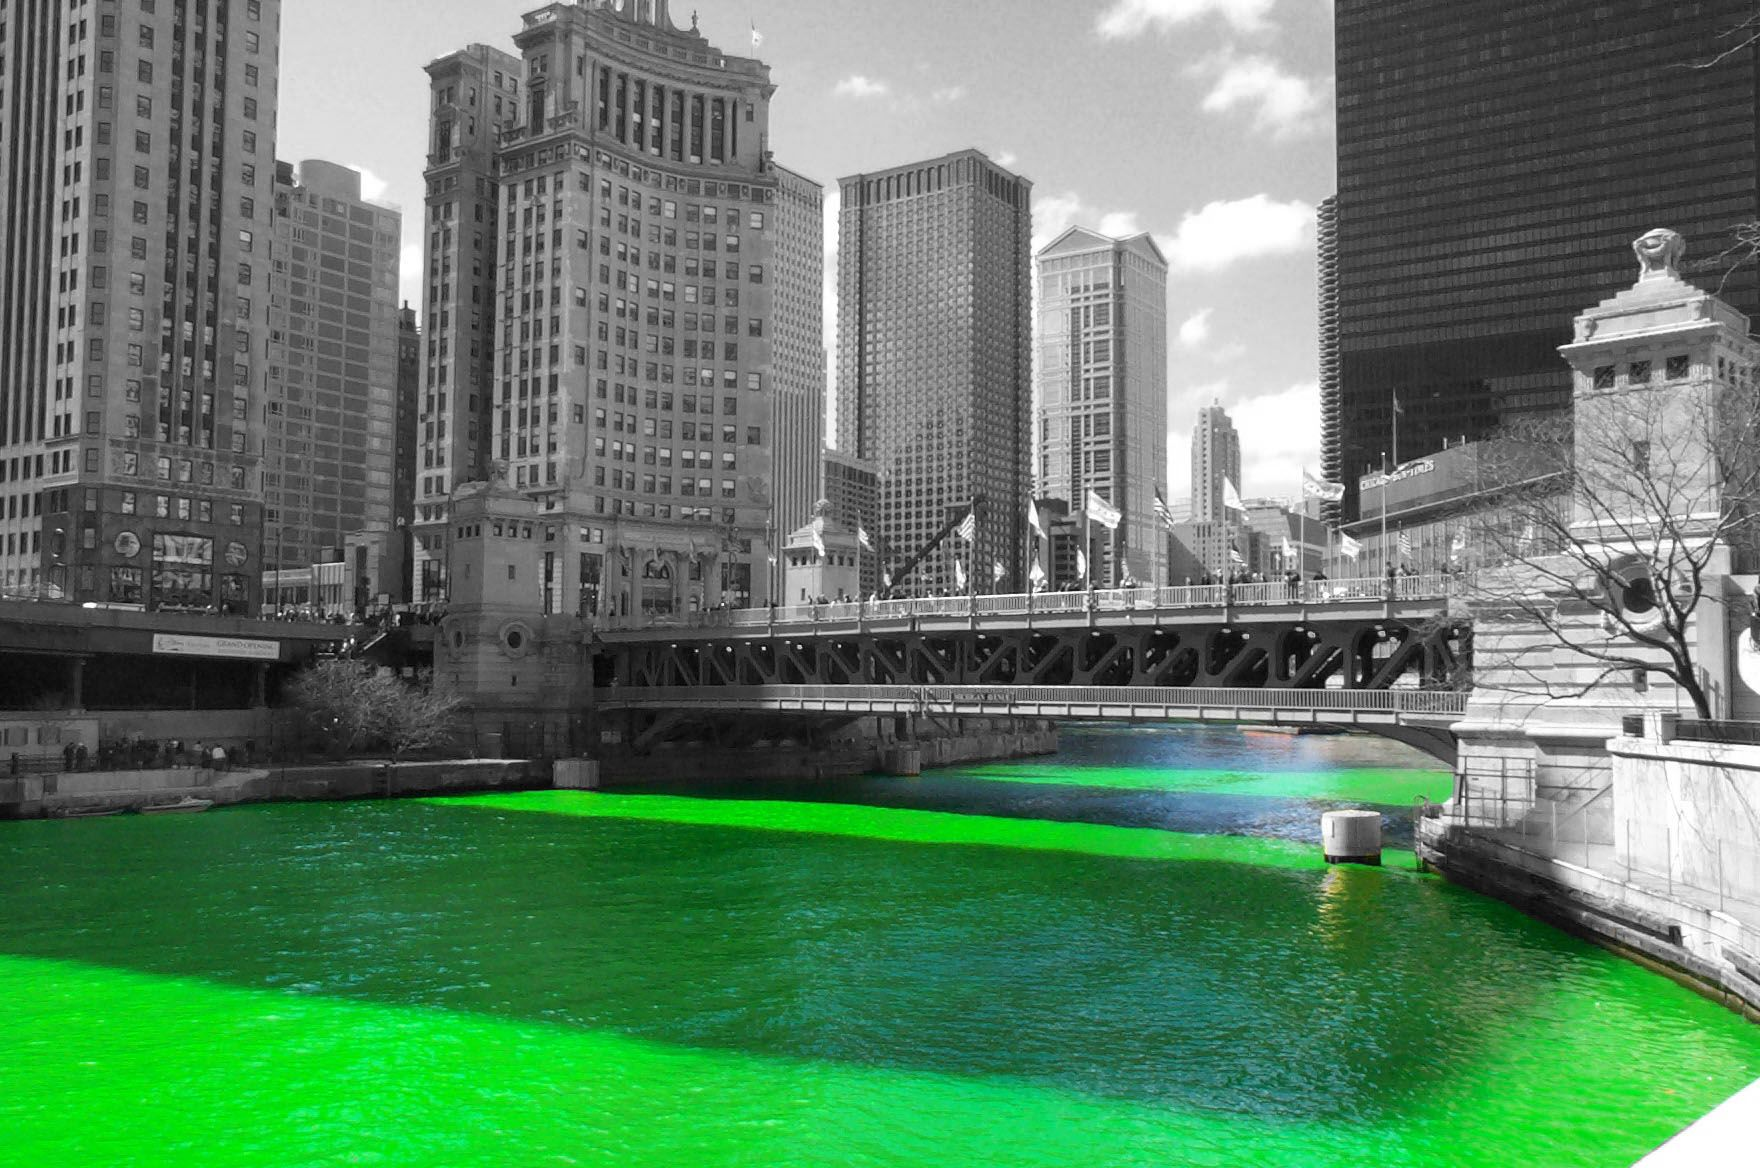 Chicago River turns green for Paddy's Day